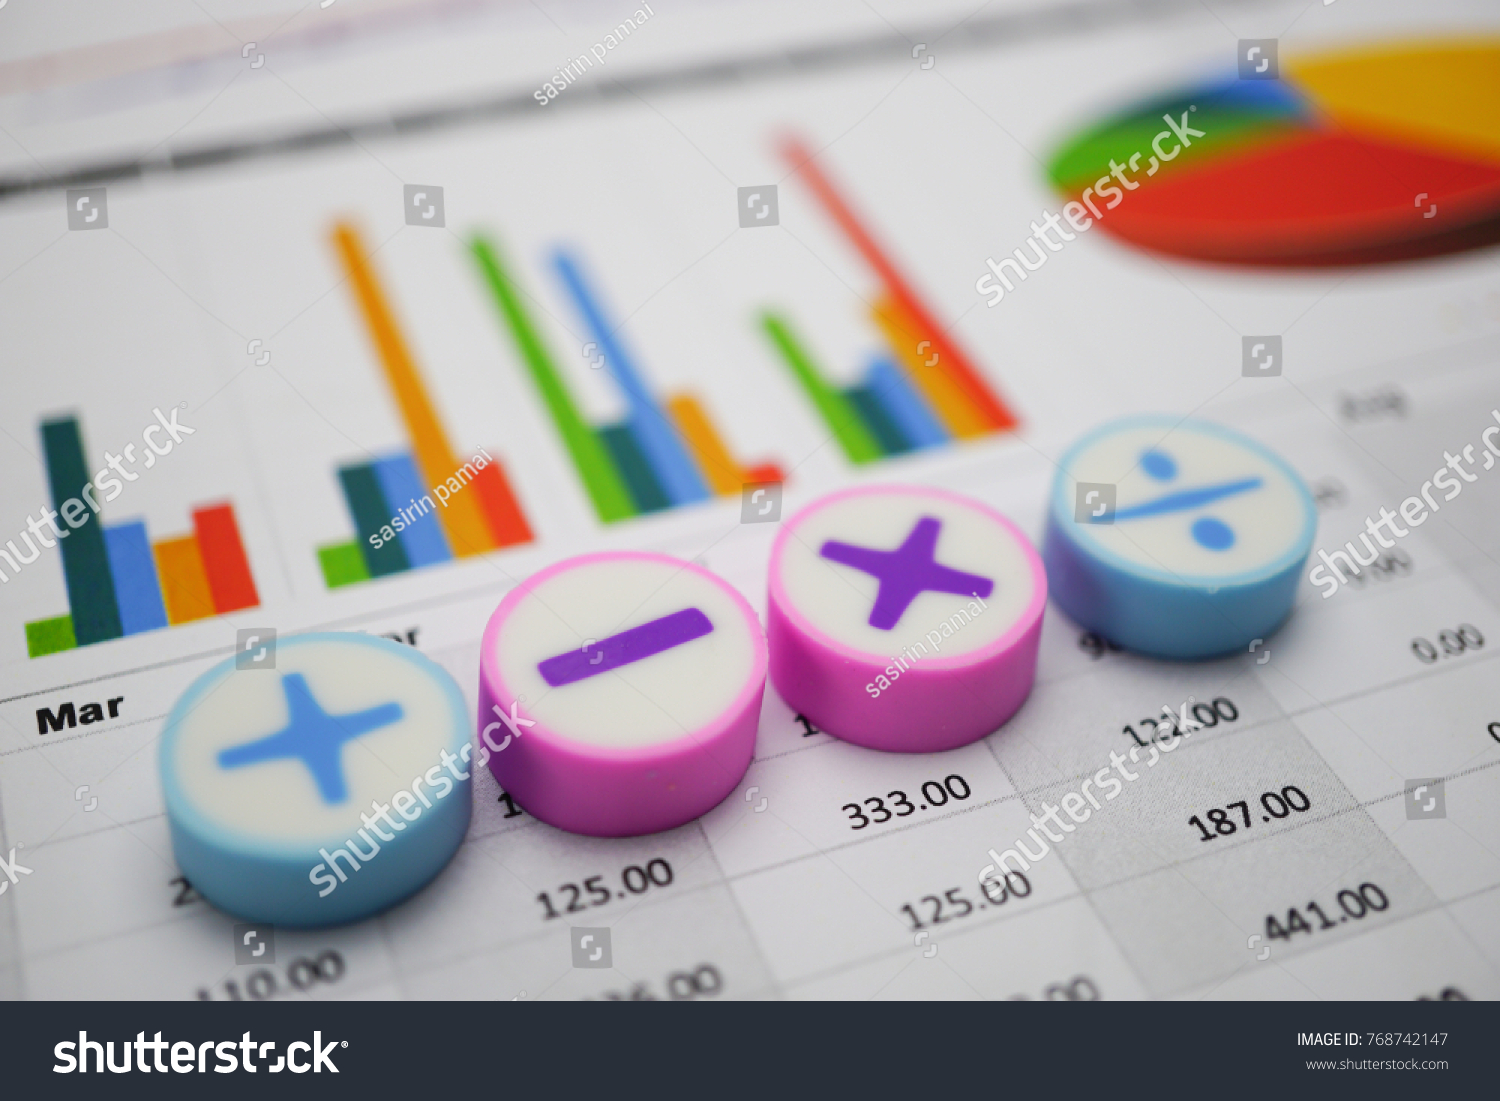 Math symbols charts graphs paper financial stock photo 768742147 math symbols charts graphs paper financial banking accounting statistics investment analytic research data biocorpaavc Images